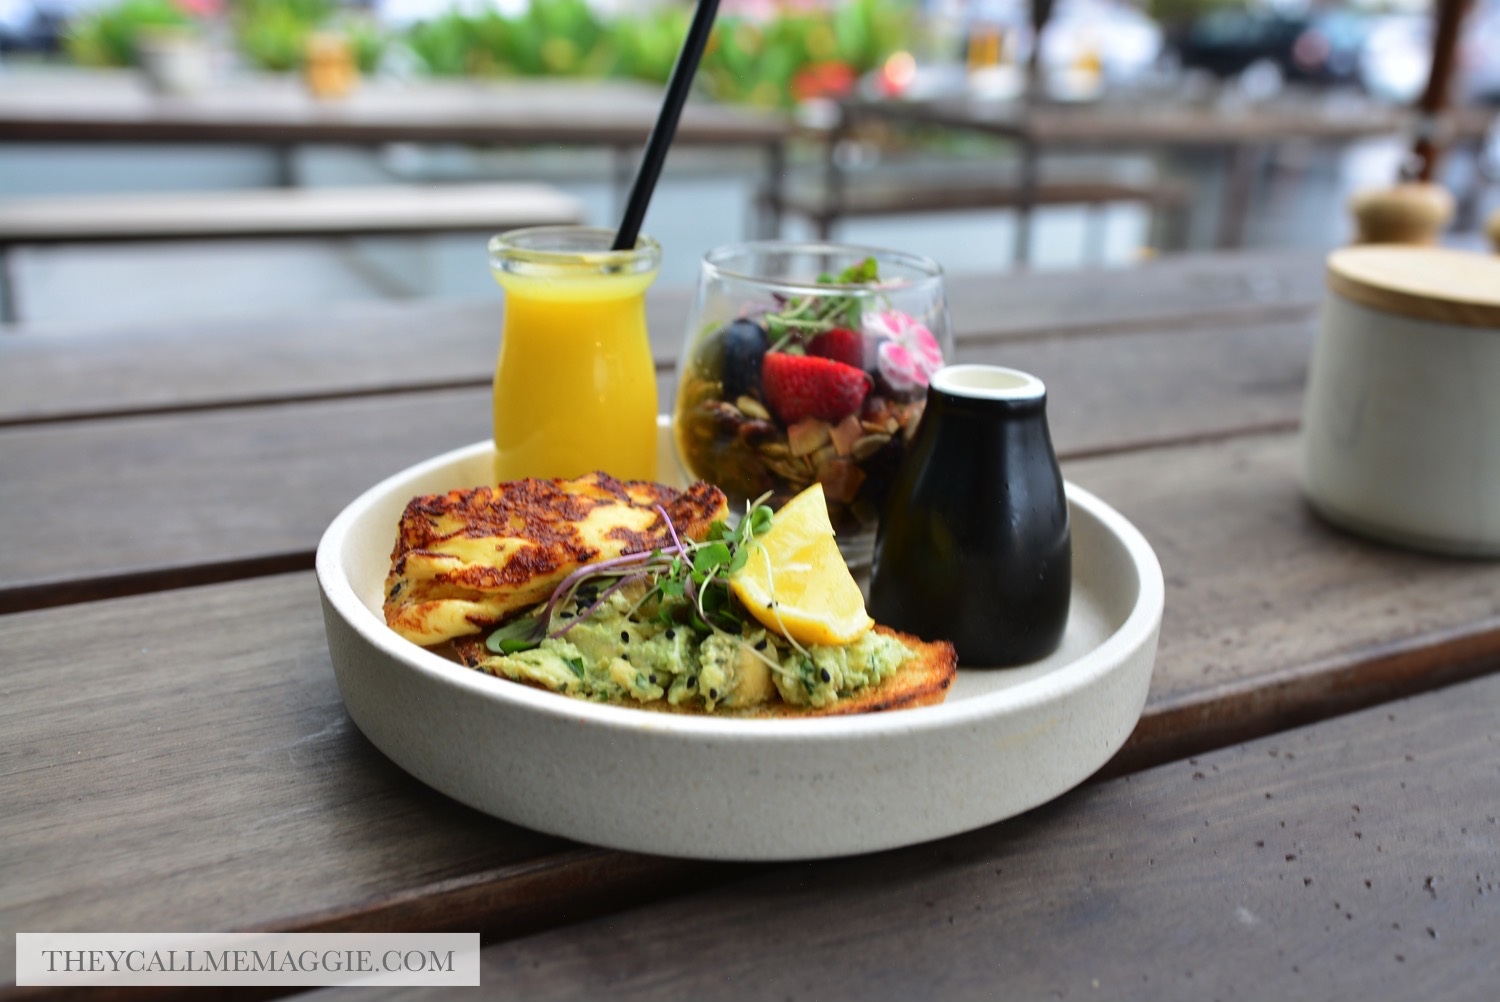 morris-and-heath-breakfast-board.jpg